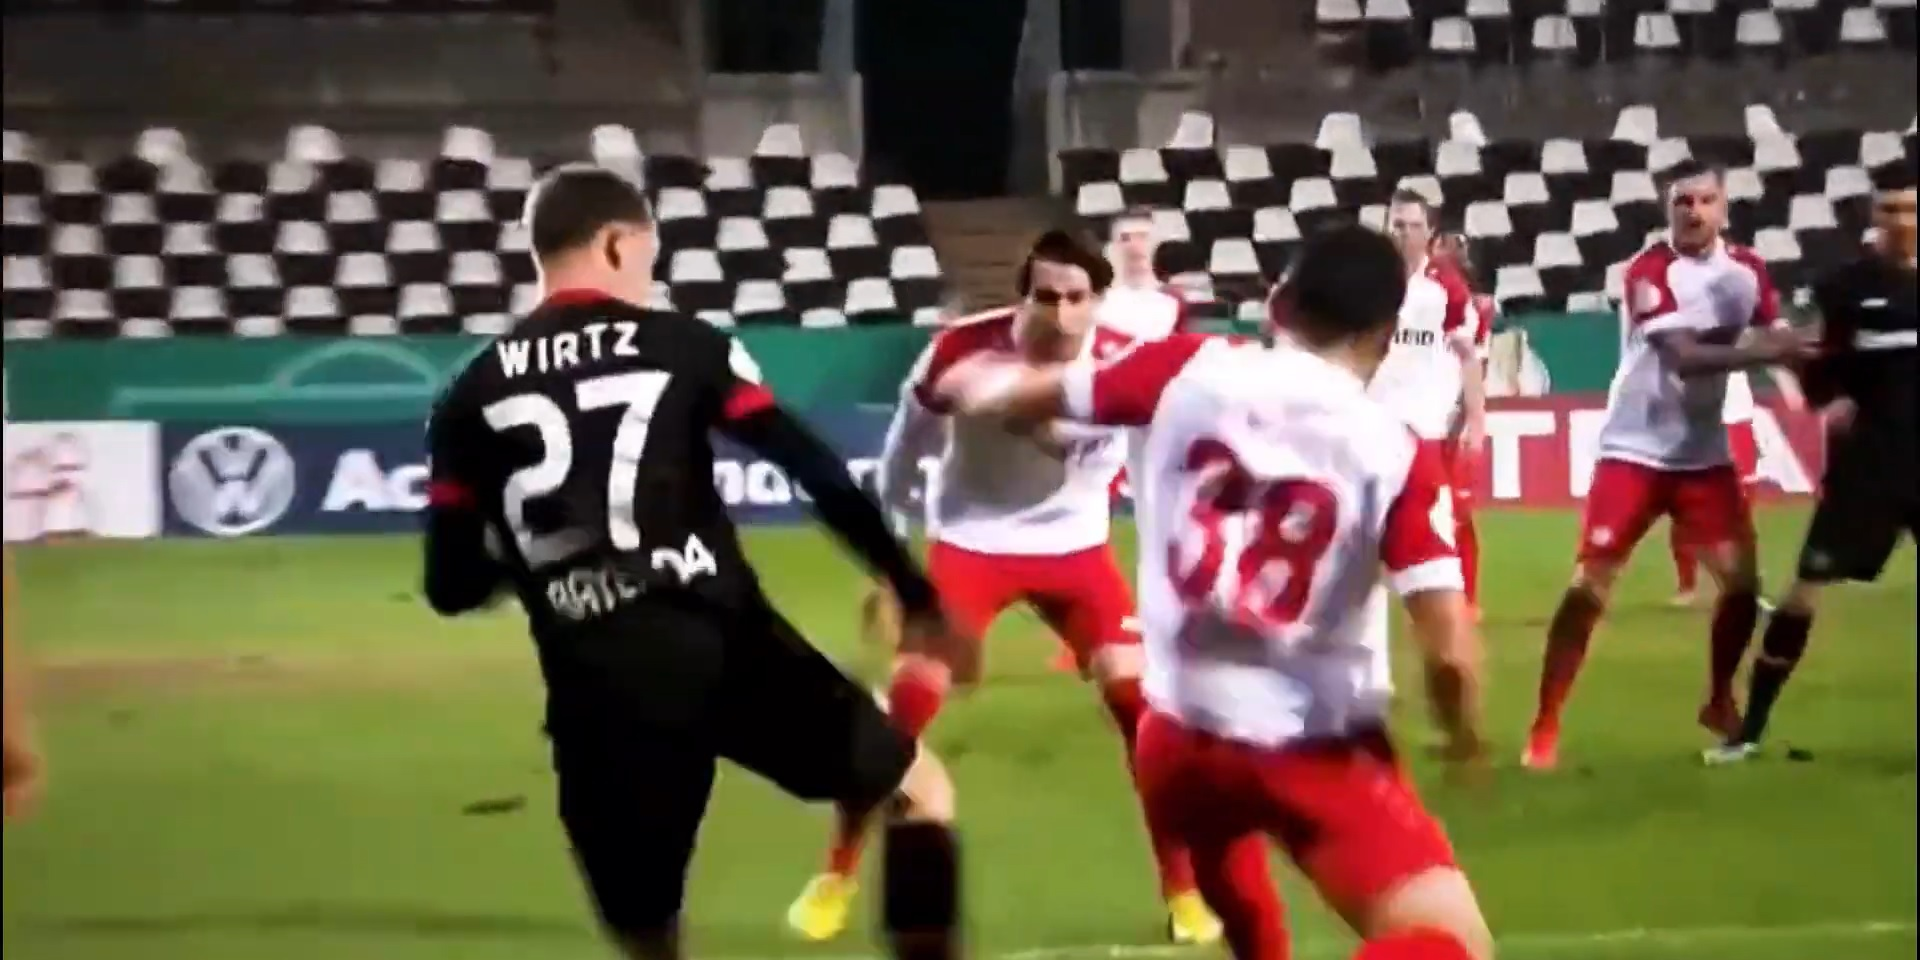 (Video) Florian Wirtz's highlights suggest that Liverpool should be actively pursuing young gem